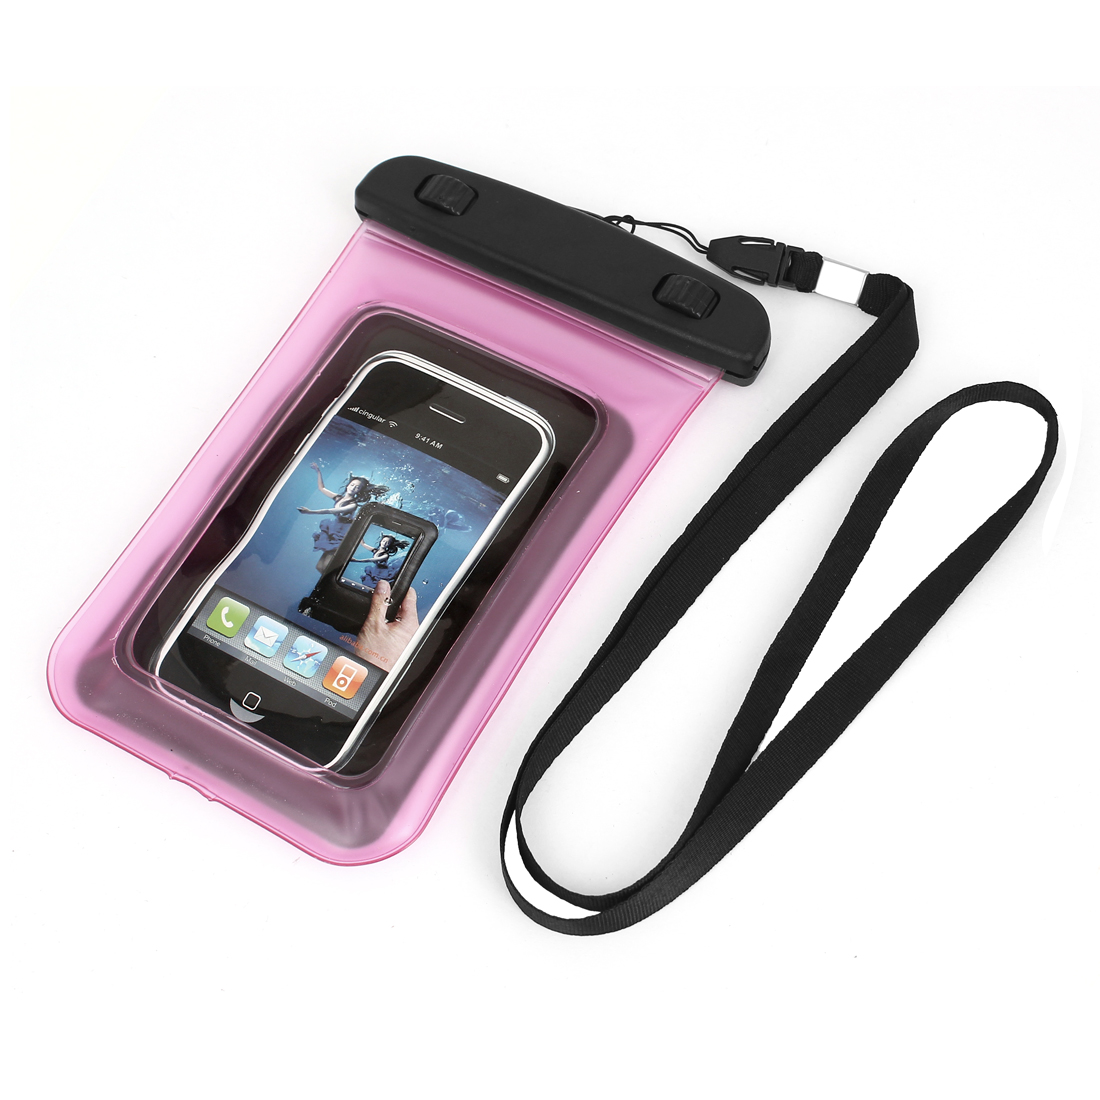 "Transparent Guard Pouch Waterproof Bag Dry Cover Case Pink for 4"" Mobile Phone"